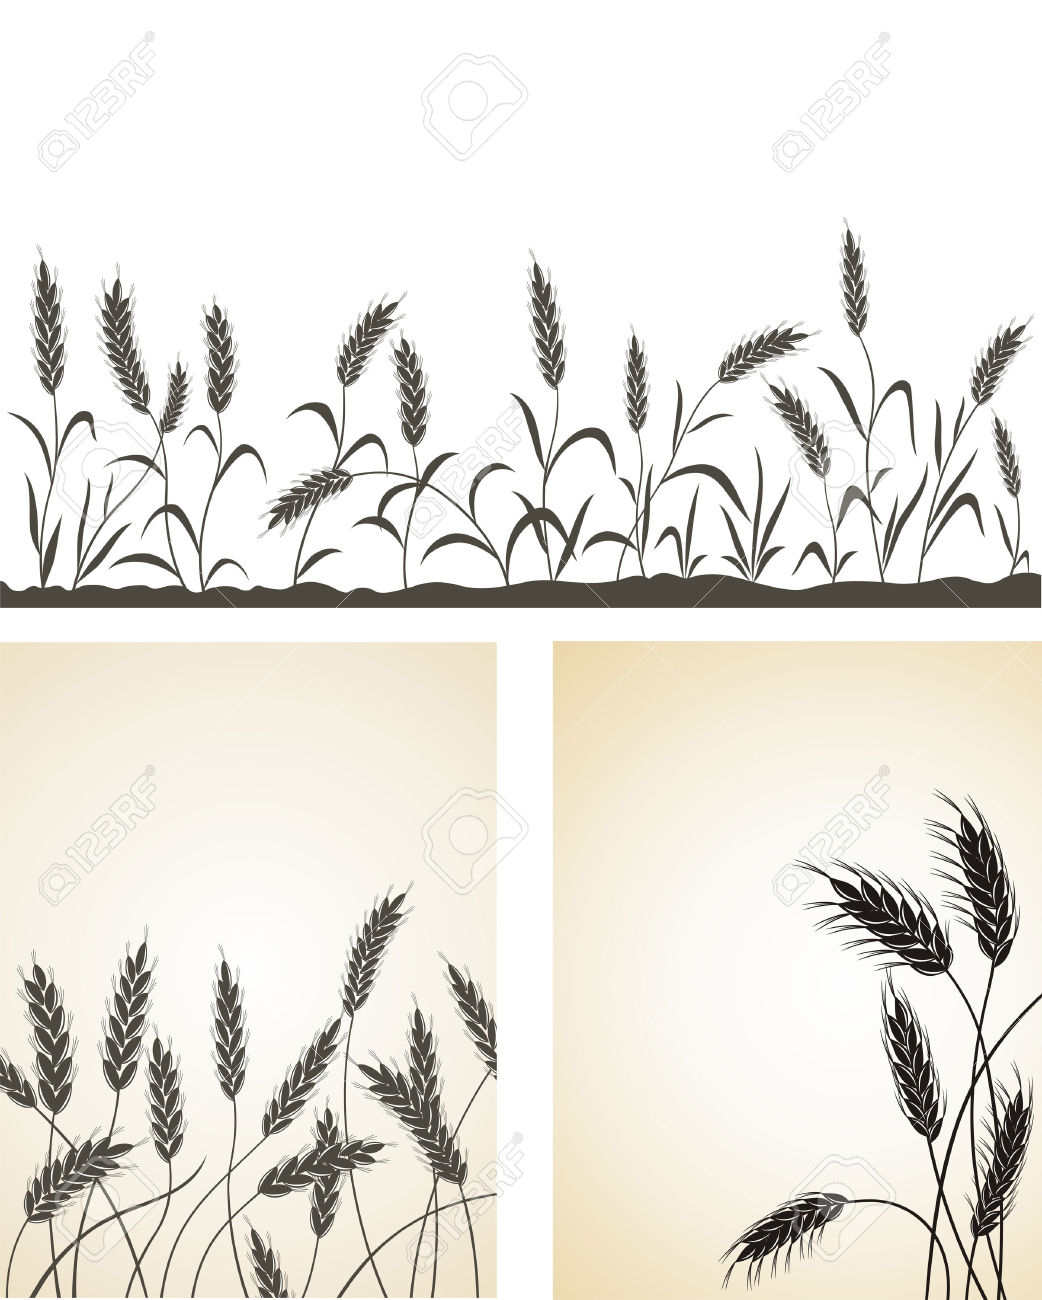 Grain Ears. Royalty Free Cliparts, Vectors, And Stock Illustration.